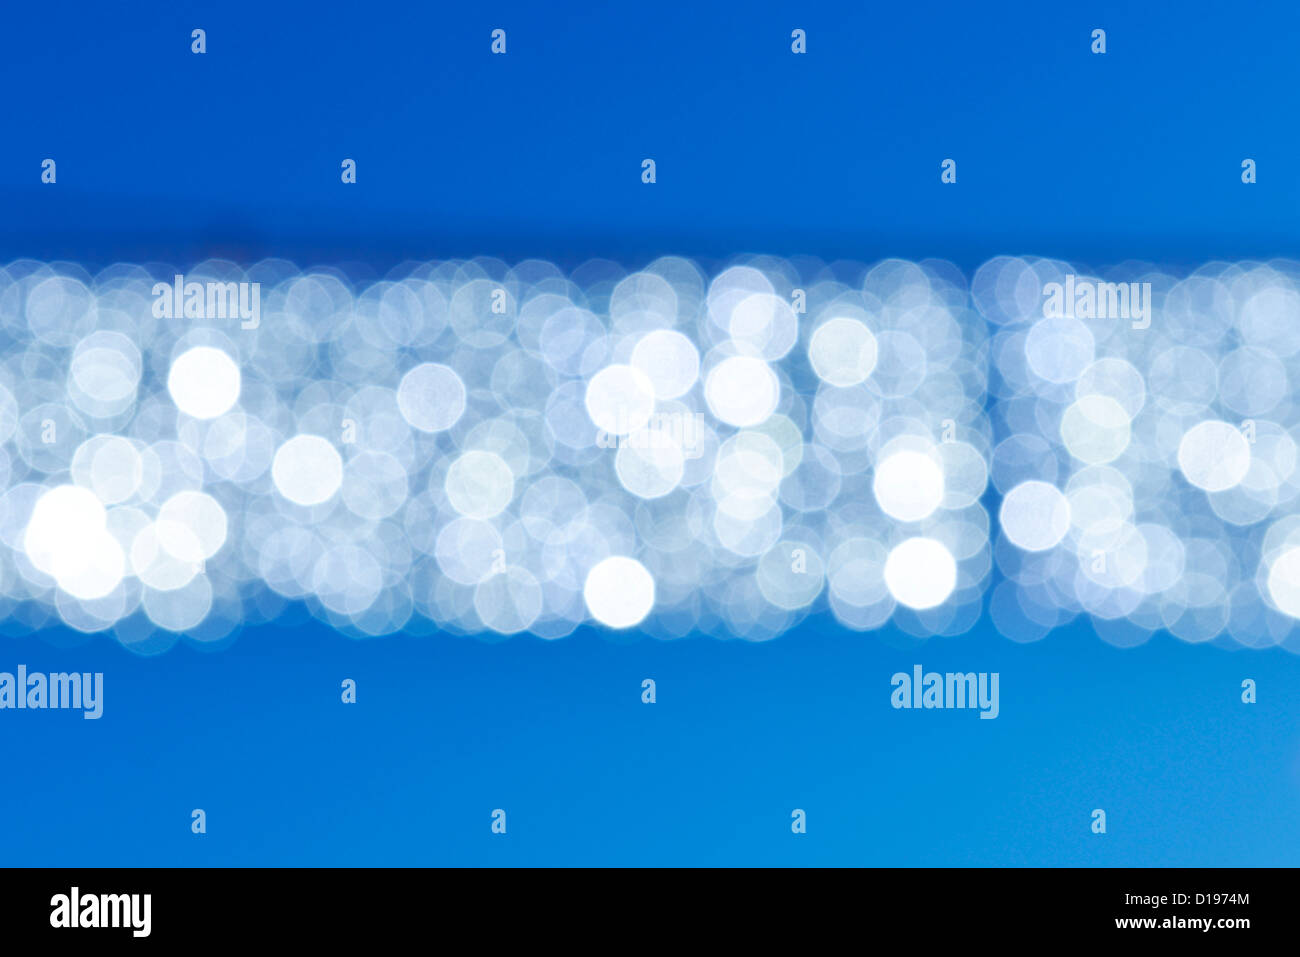 Abstract blue and white stripe - Stock Image